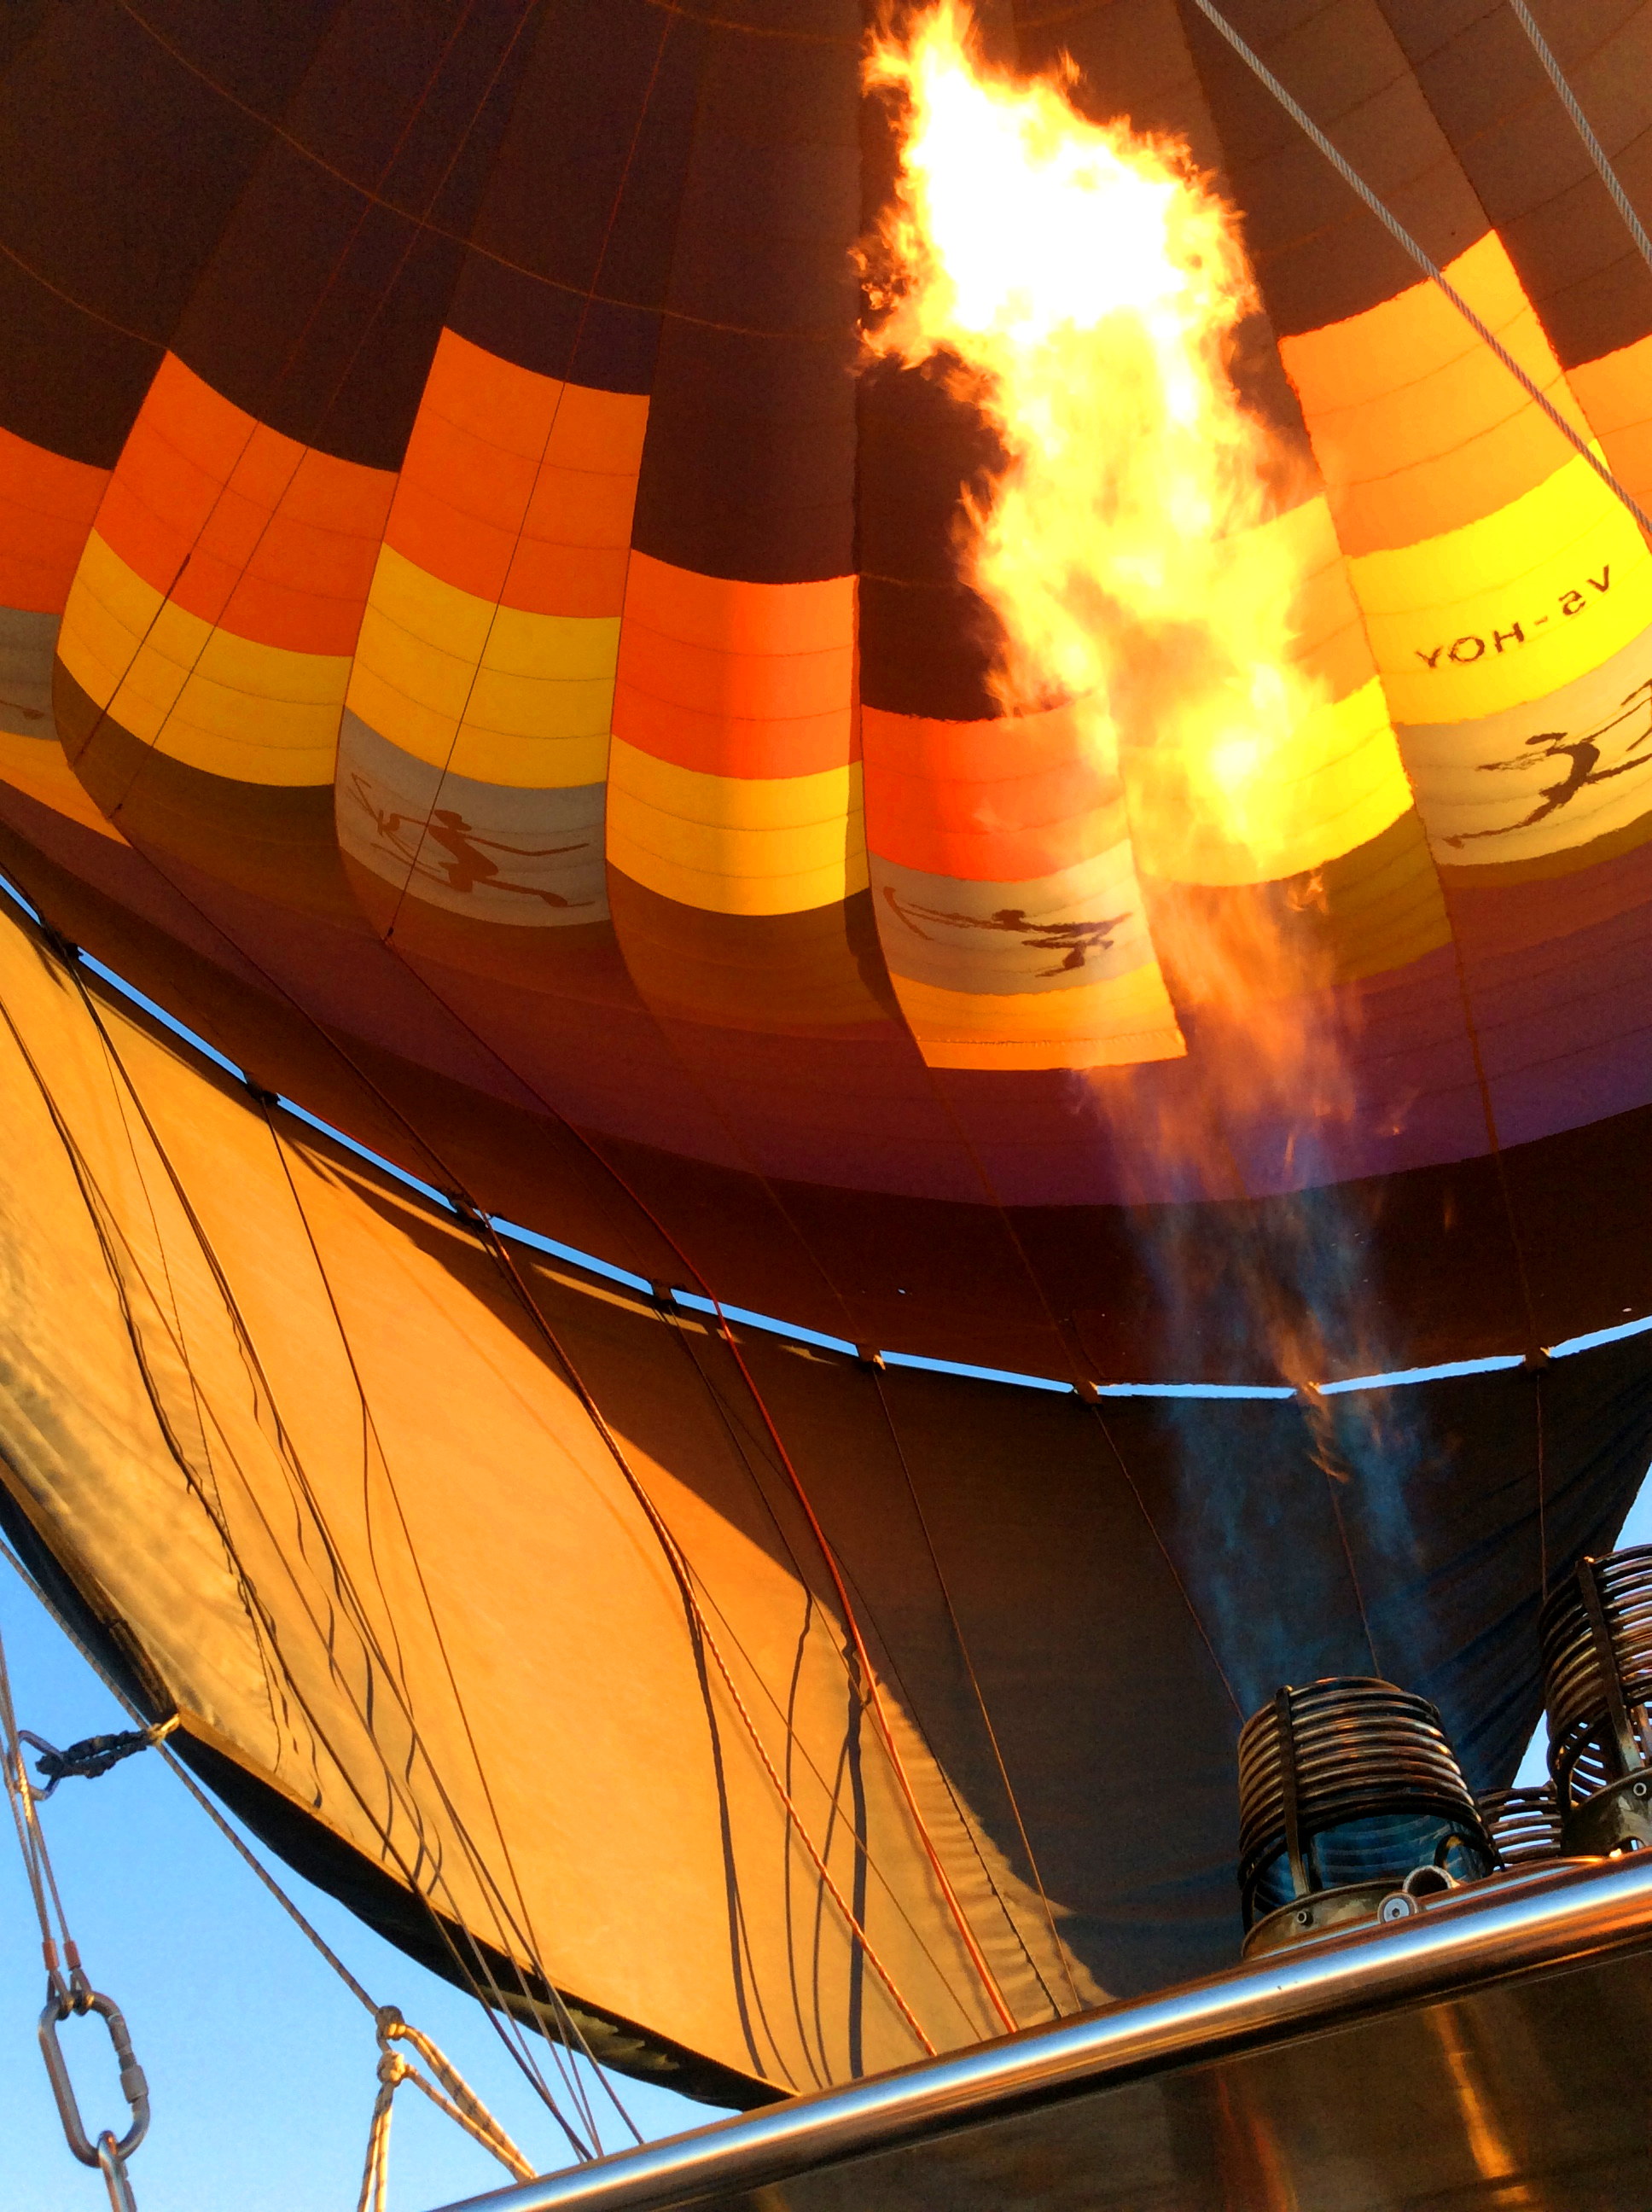 Image taken by one of our guests on a hot air balloon ride this year